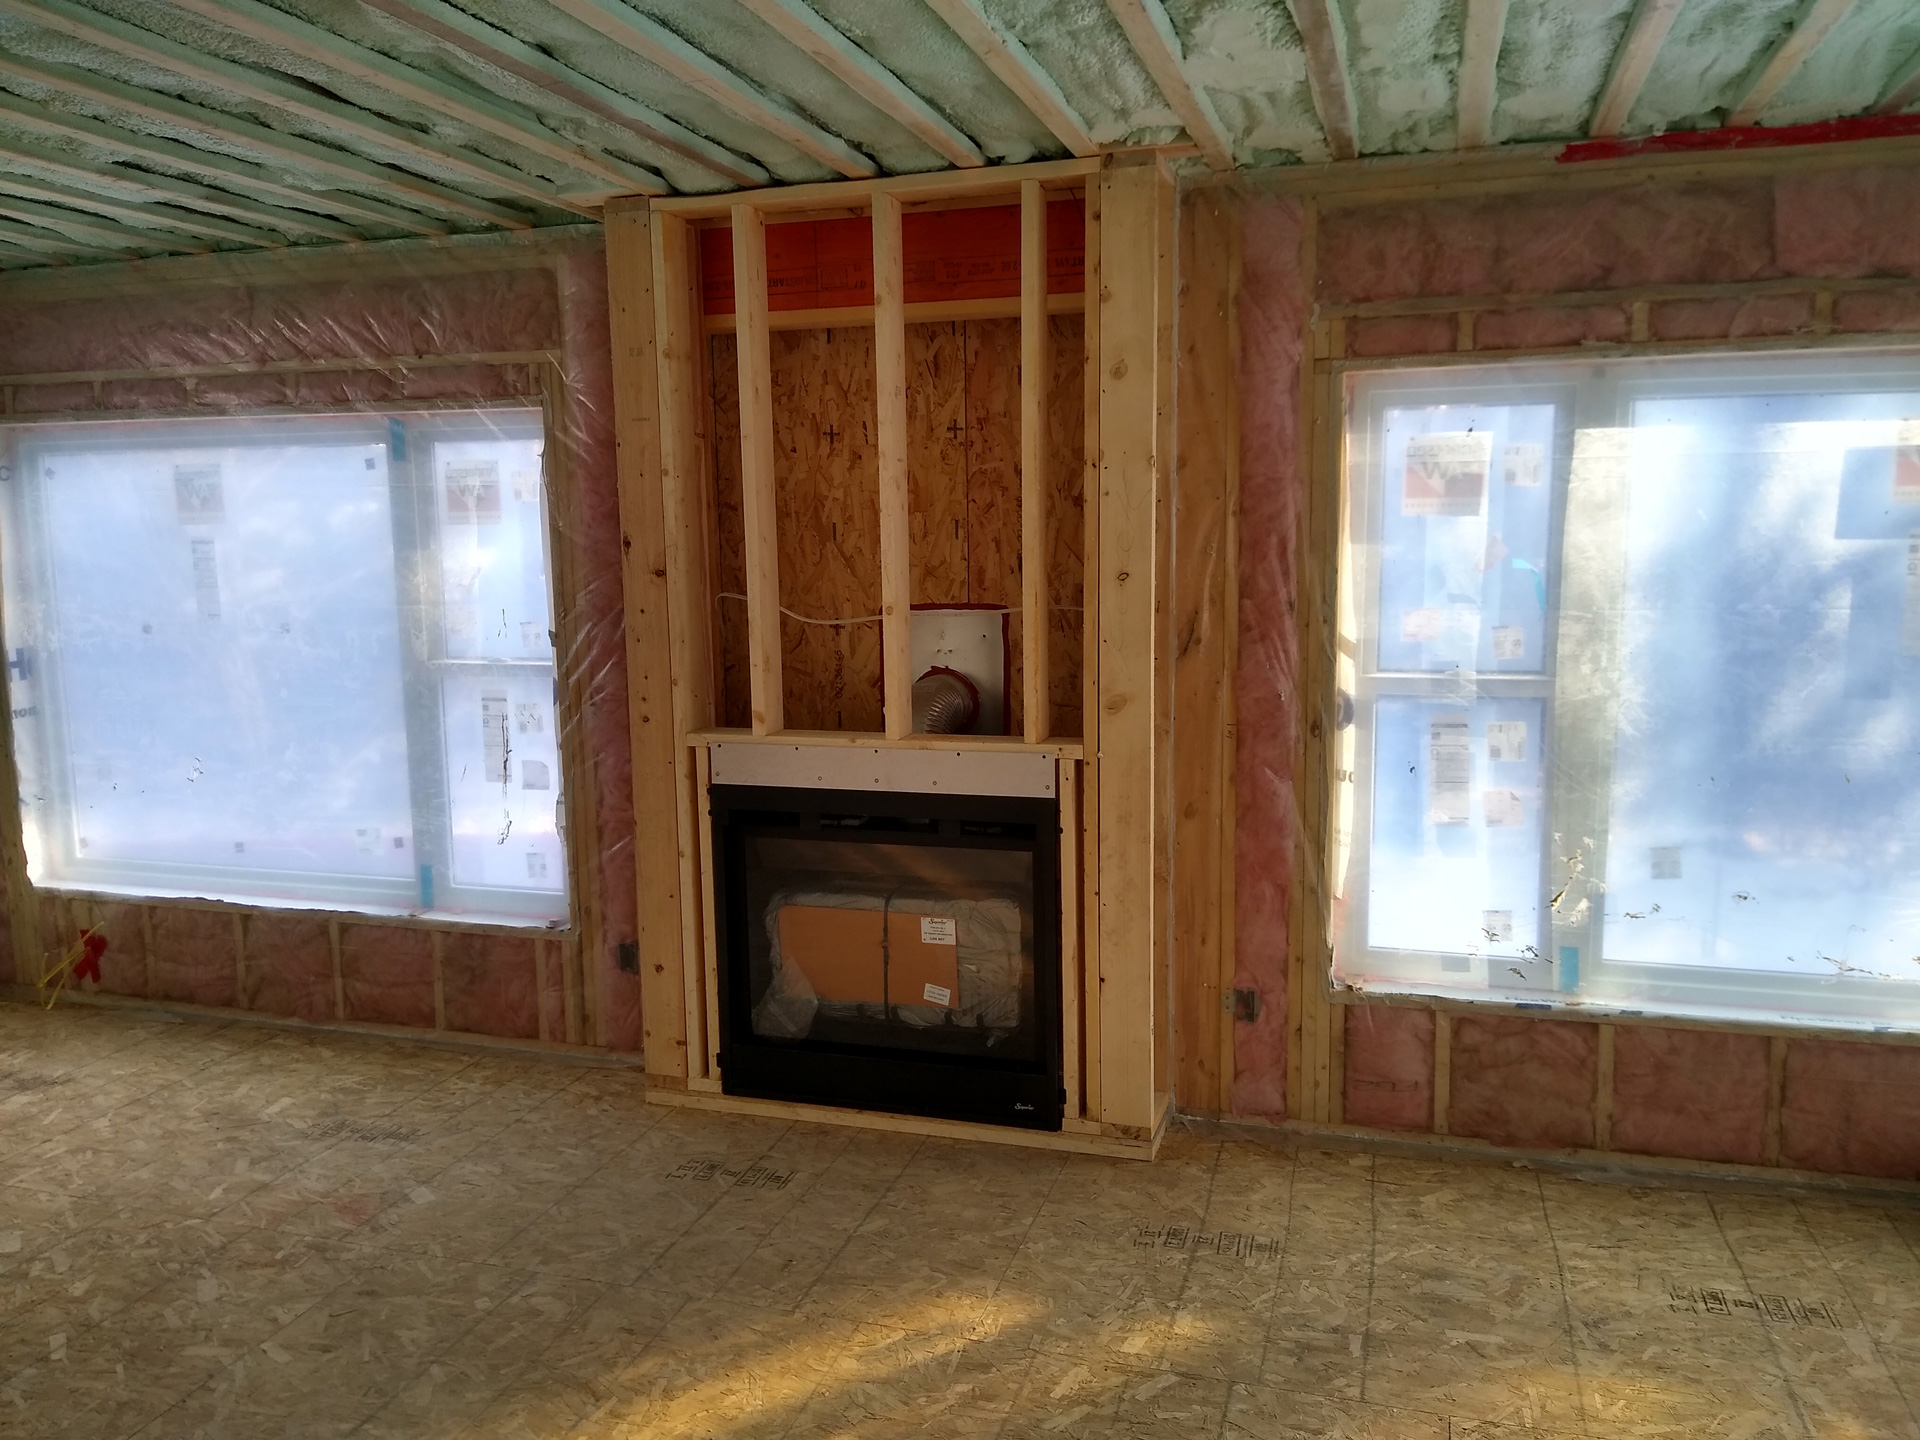 fireplace with windows on side and unfinished walls